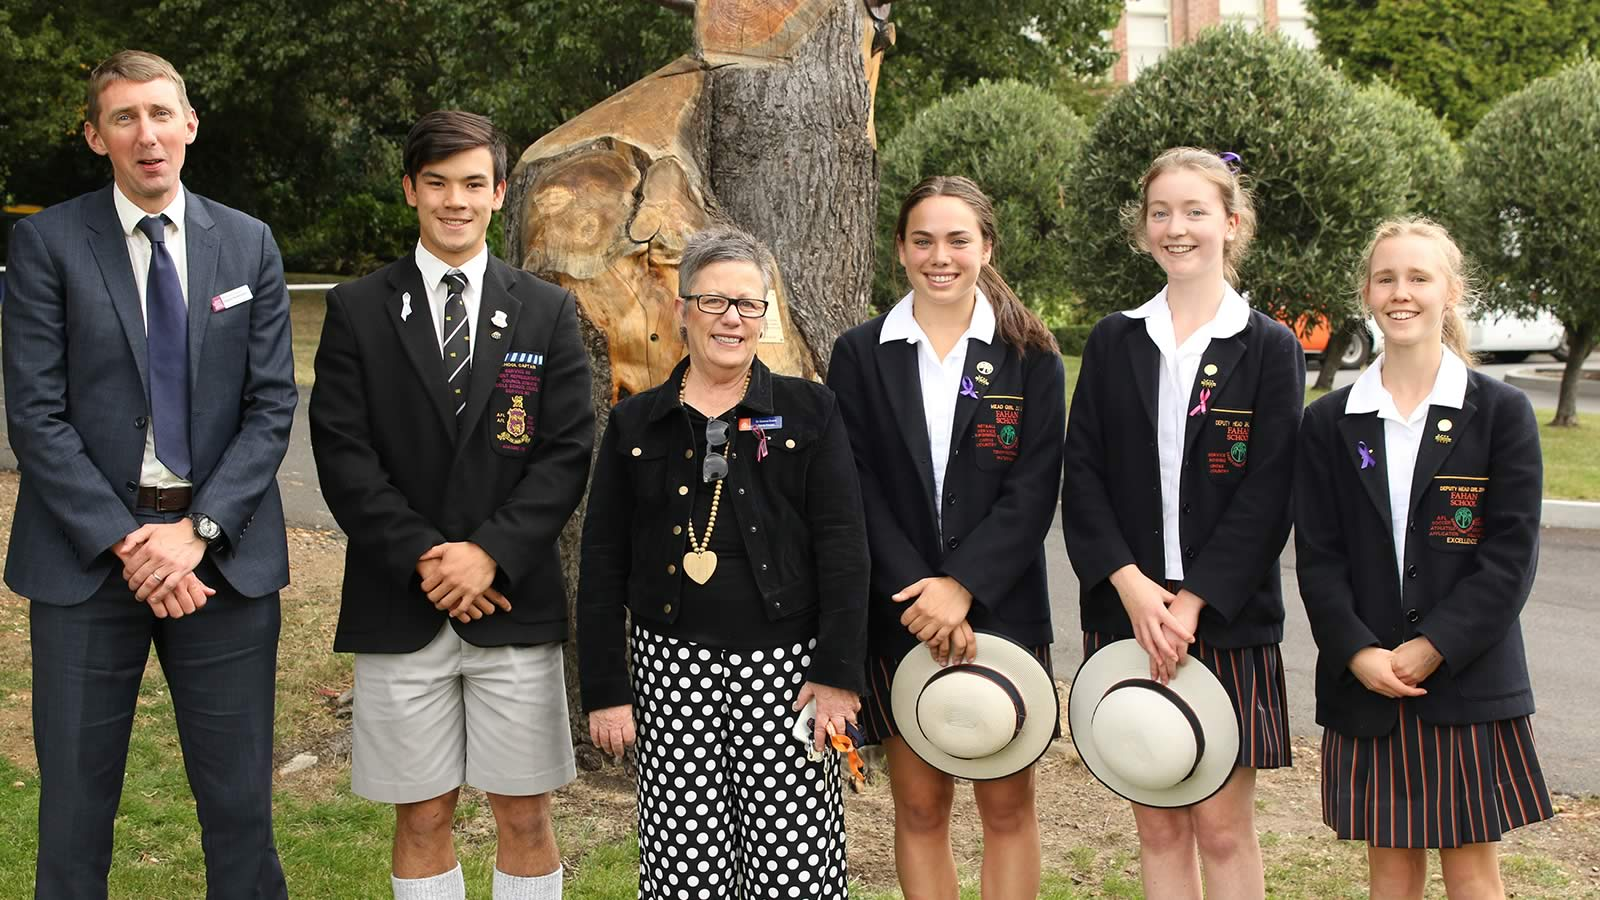 The Hutchins School Deputy Headmaster – Mr Richard Davies, School Captain – Oliver Burrows-Cheng, The Fahan School Deputy Principal - Dr Donna Evans, Head Girl – Isabella Faird, Deputy Head Girl – Emma Ward and Sophie Young.